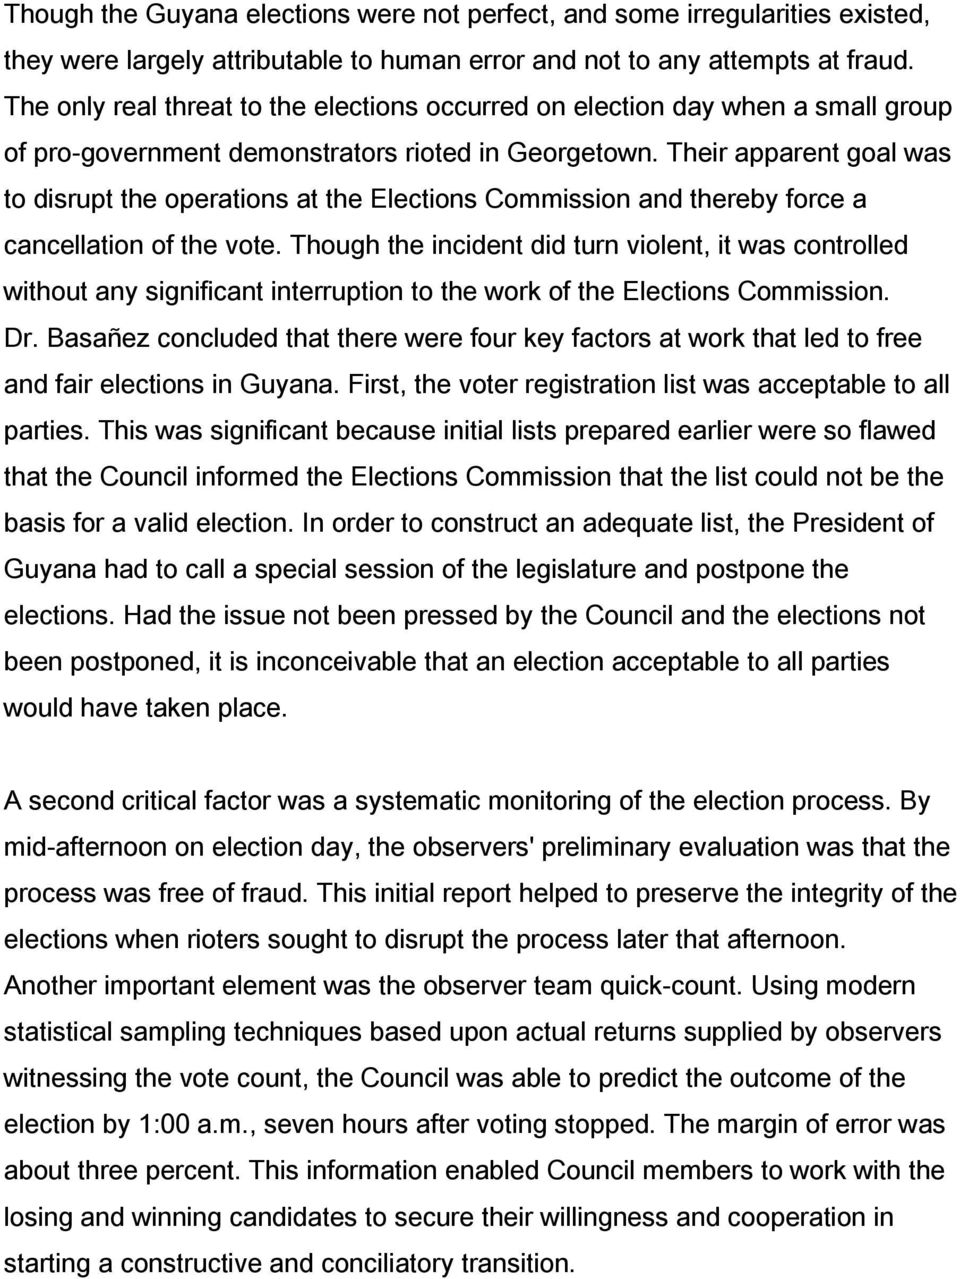 Their apparent goal was to disrupt the operations at the Elections Commission and thereby force a cancellation of the vote.